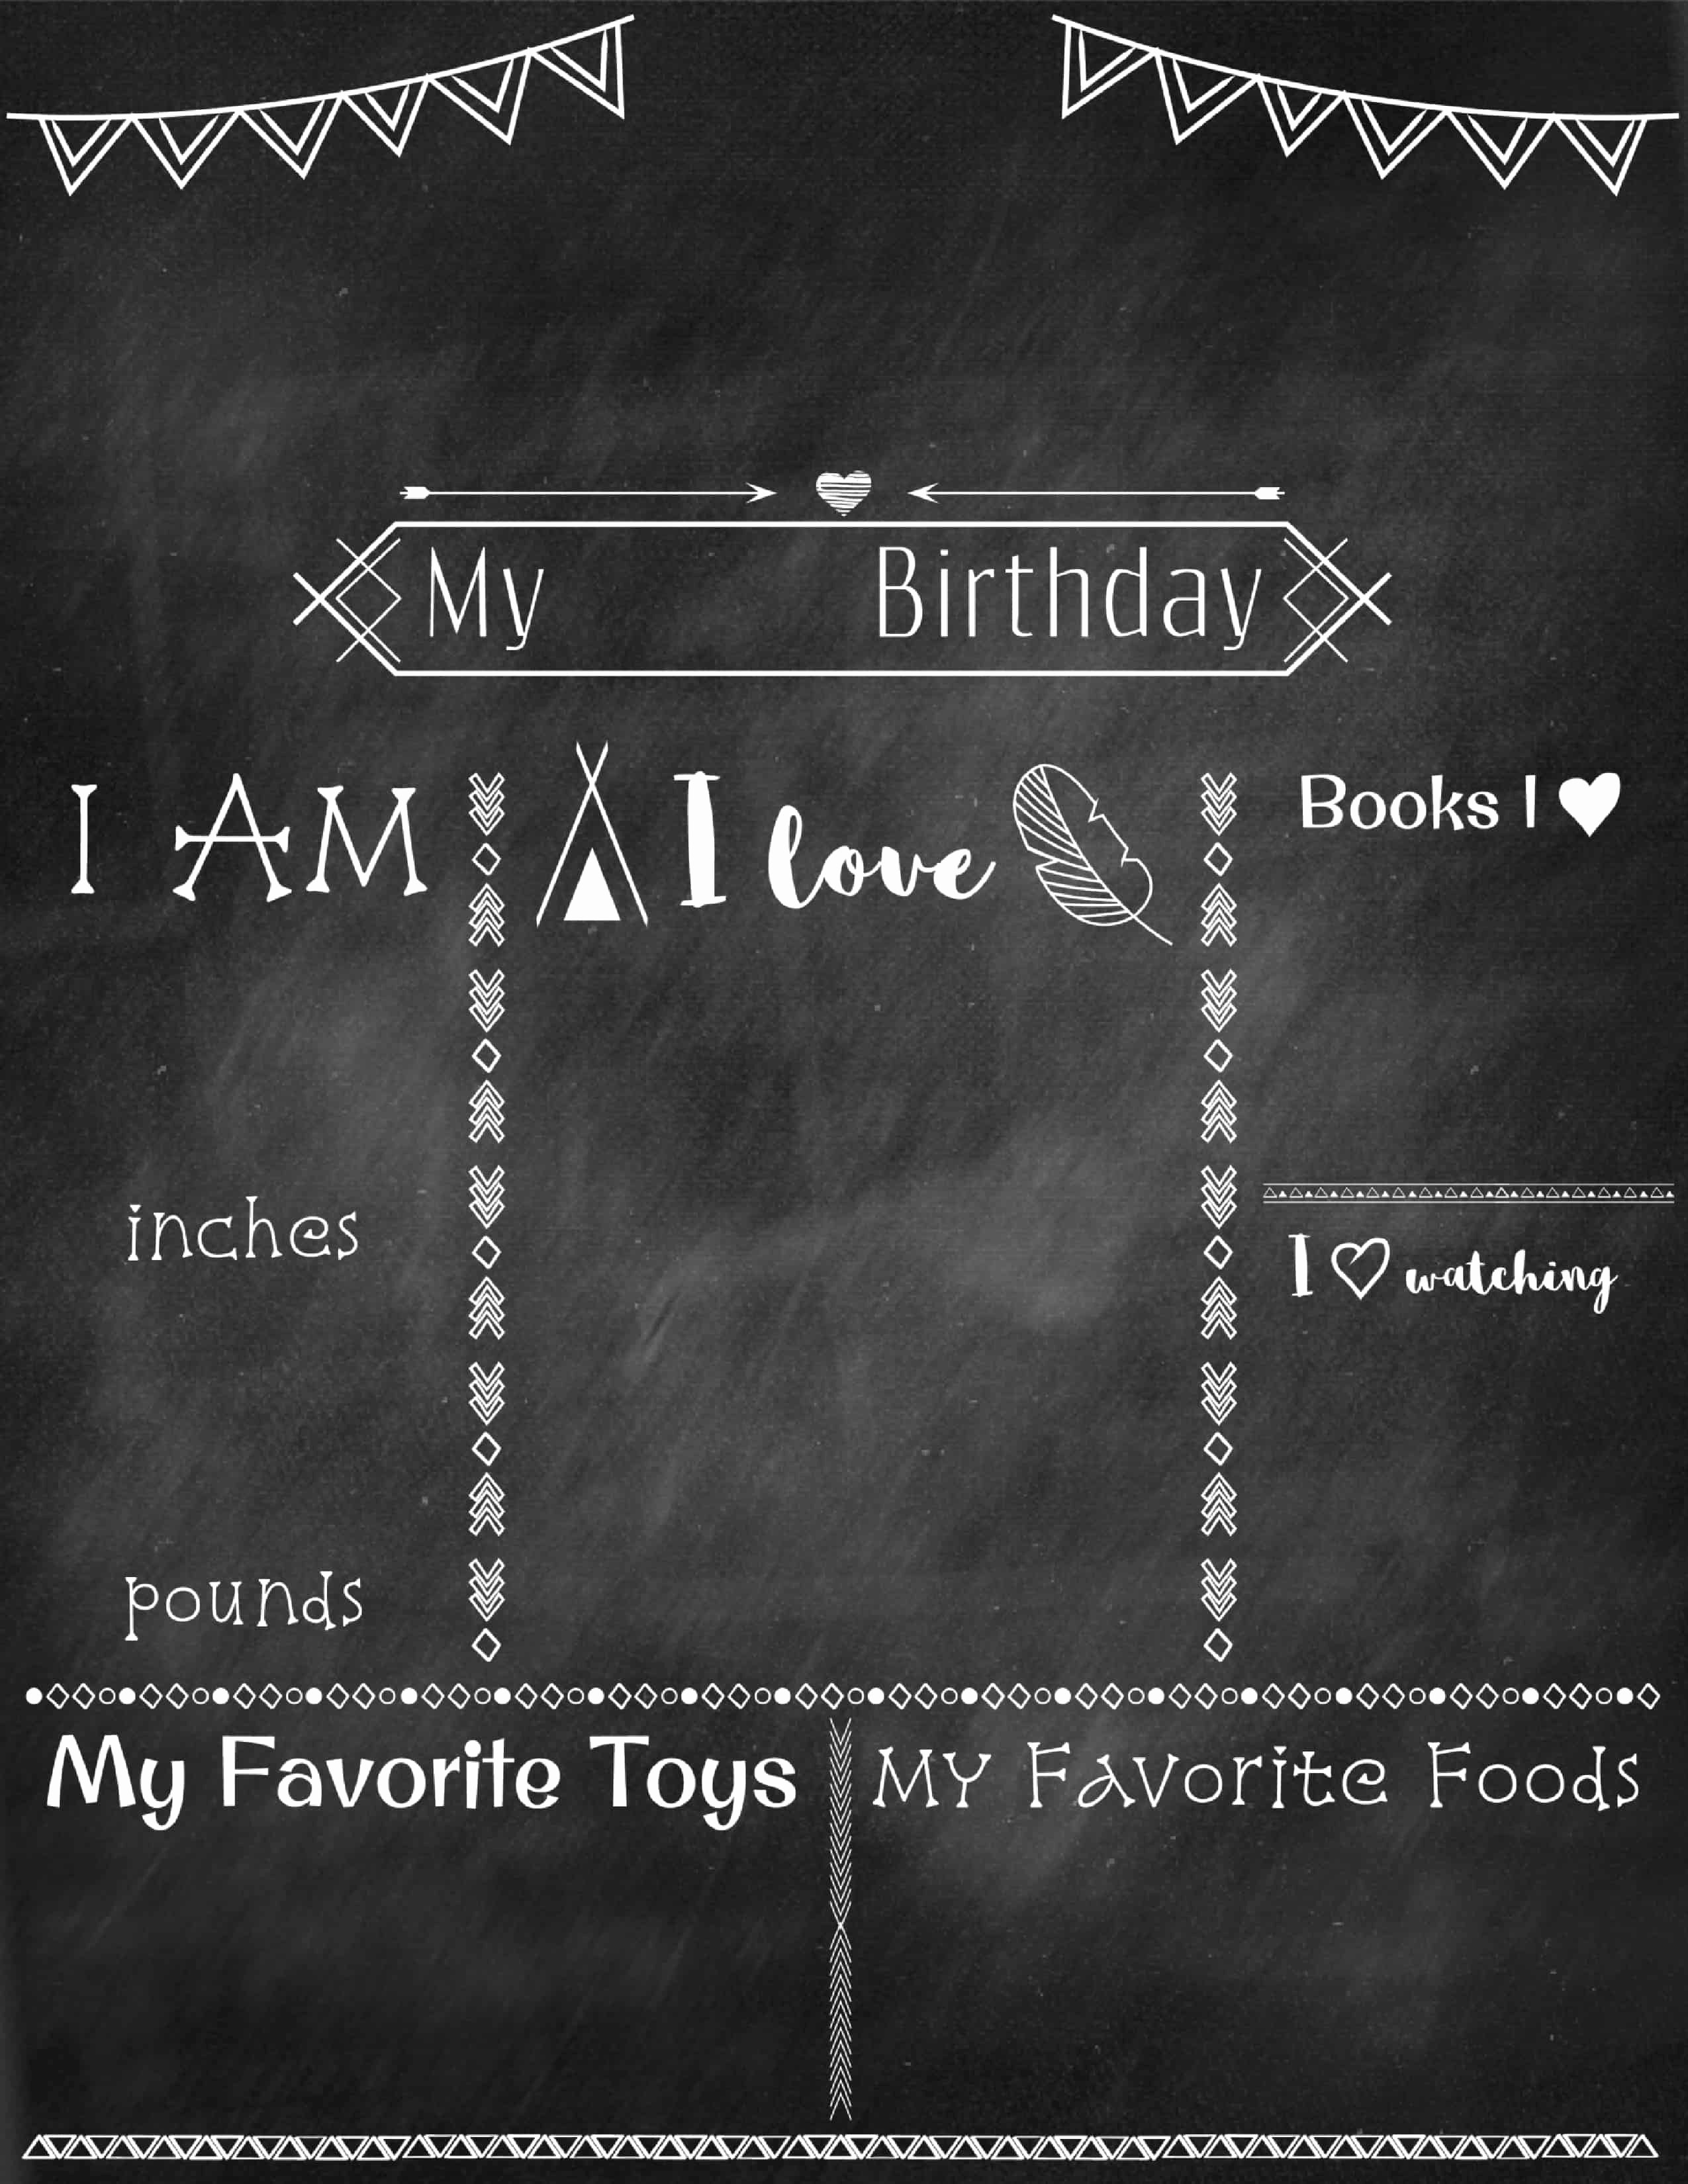 Free Birthday Chalkboard Template Beautiful Birthday Poster Template Free with Step by Step Tutorial